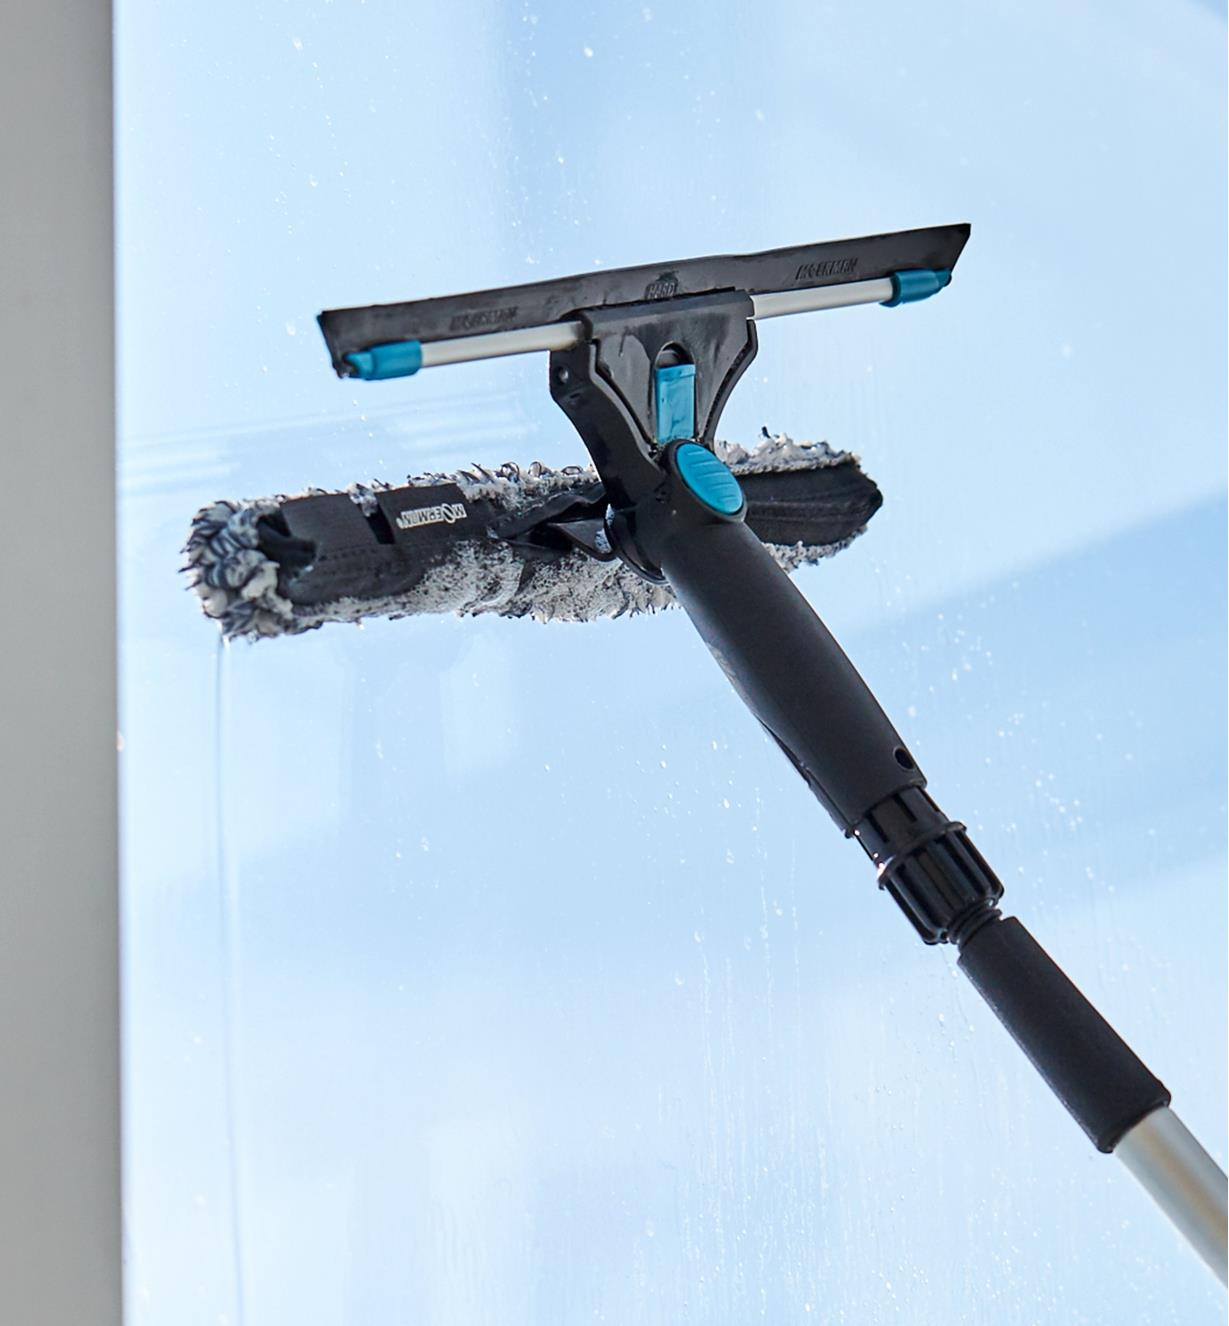 Using the microfiber scrubber to clean a window